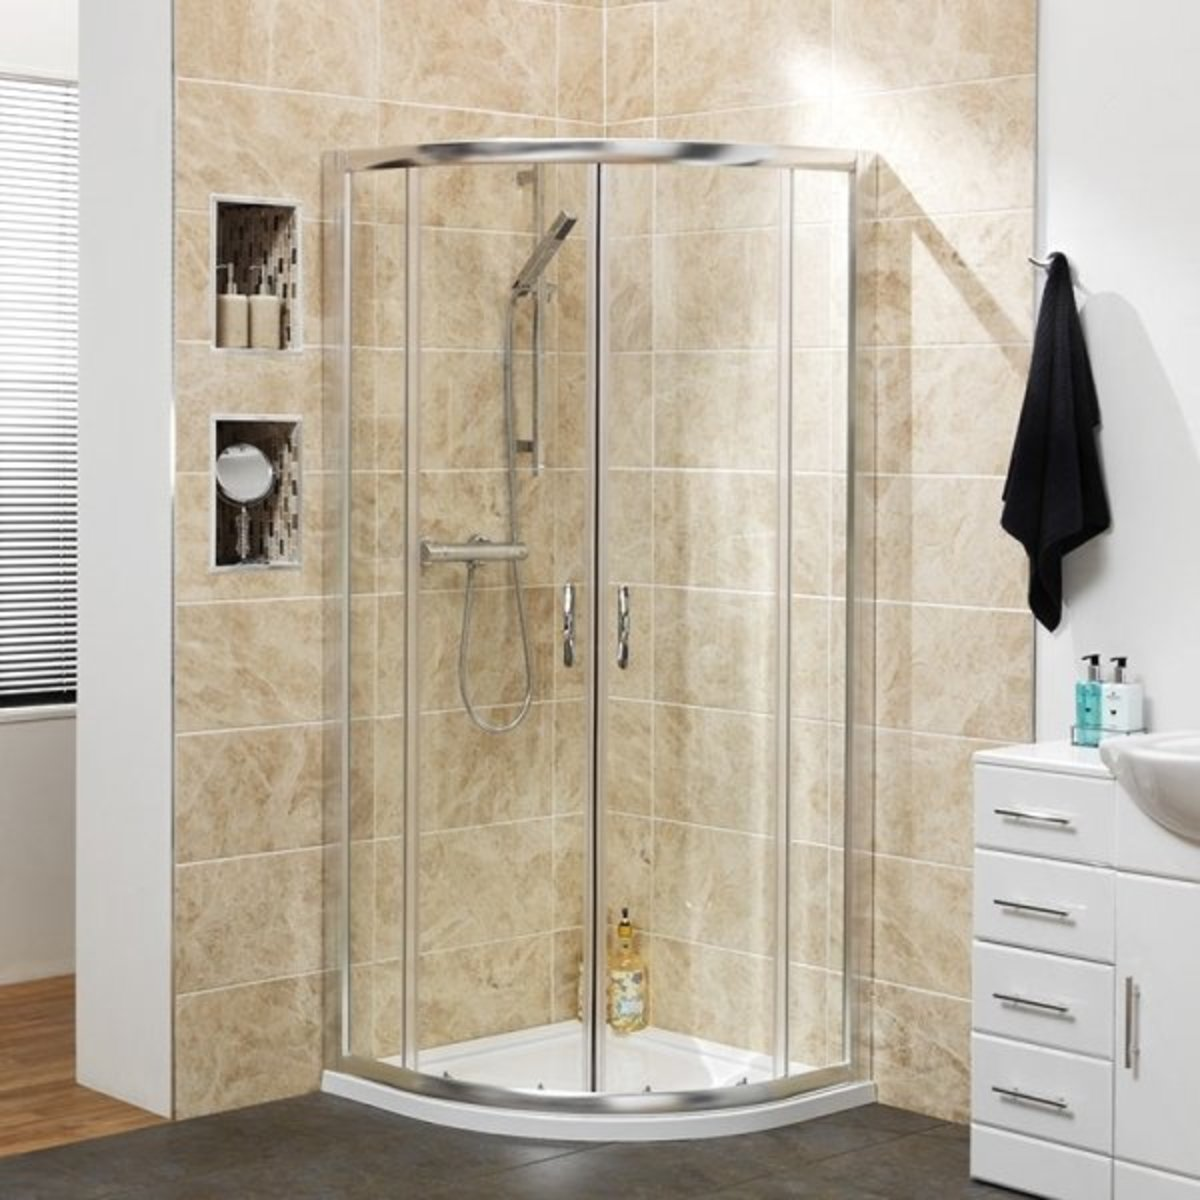 The Pros and Cons of Replacing Your Bath With a Shower | Dengarden